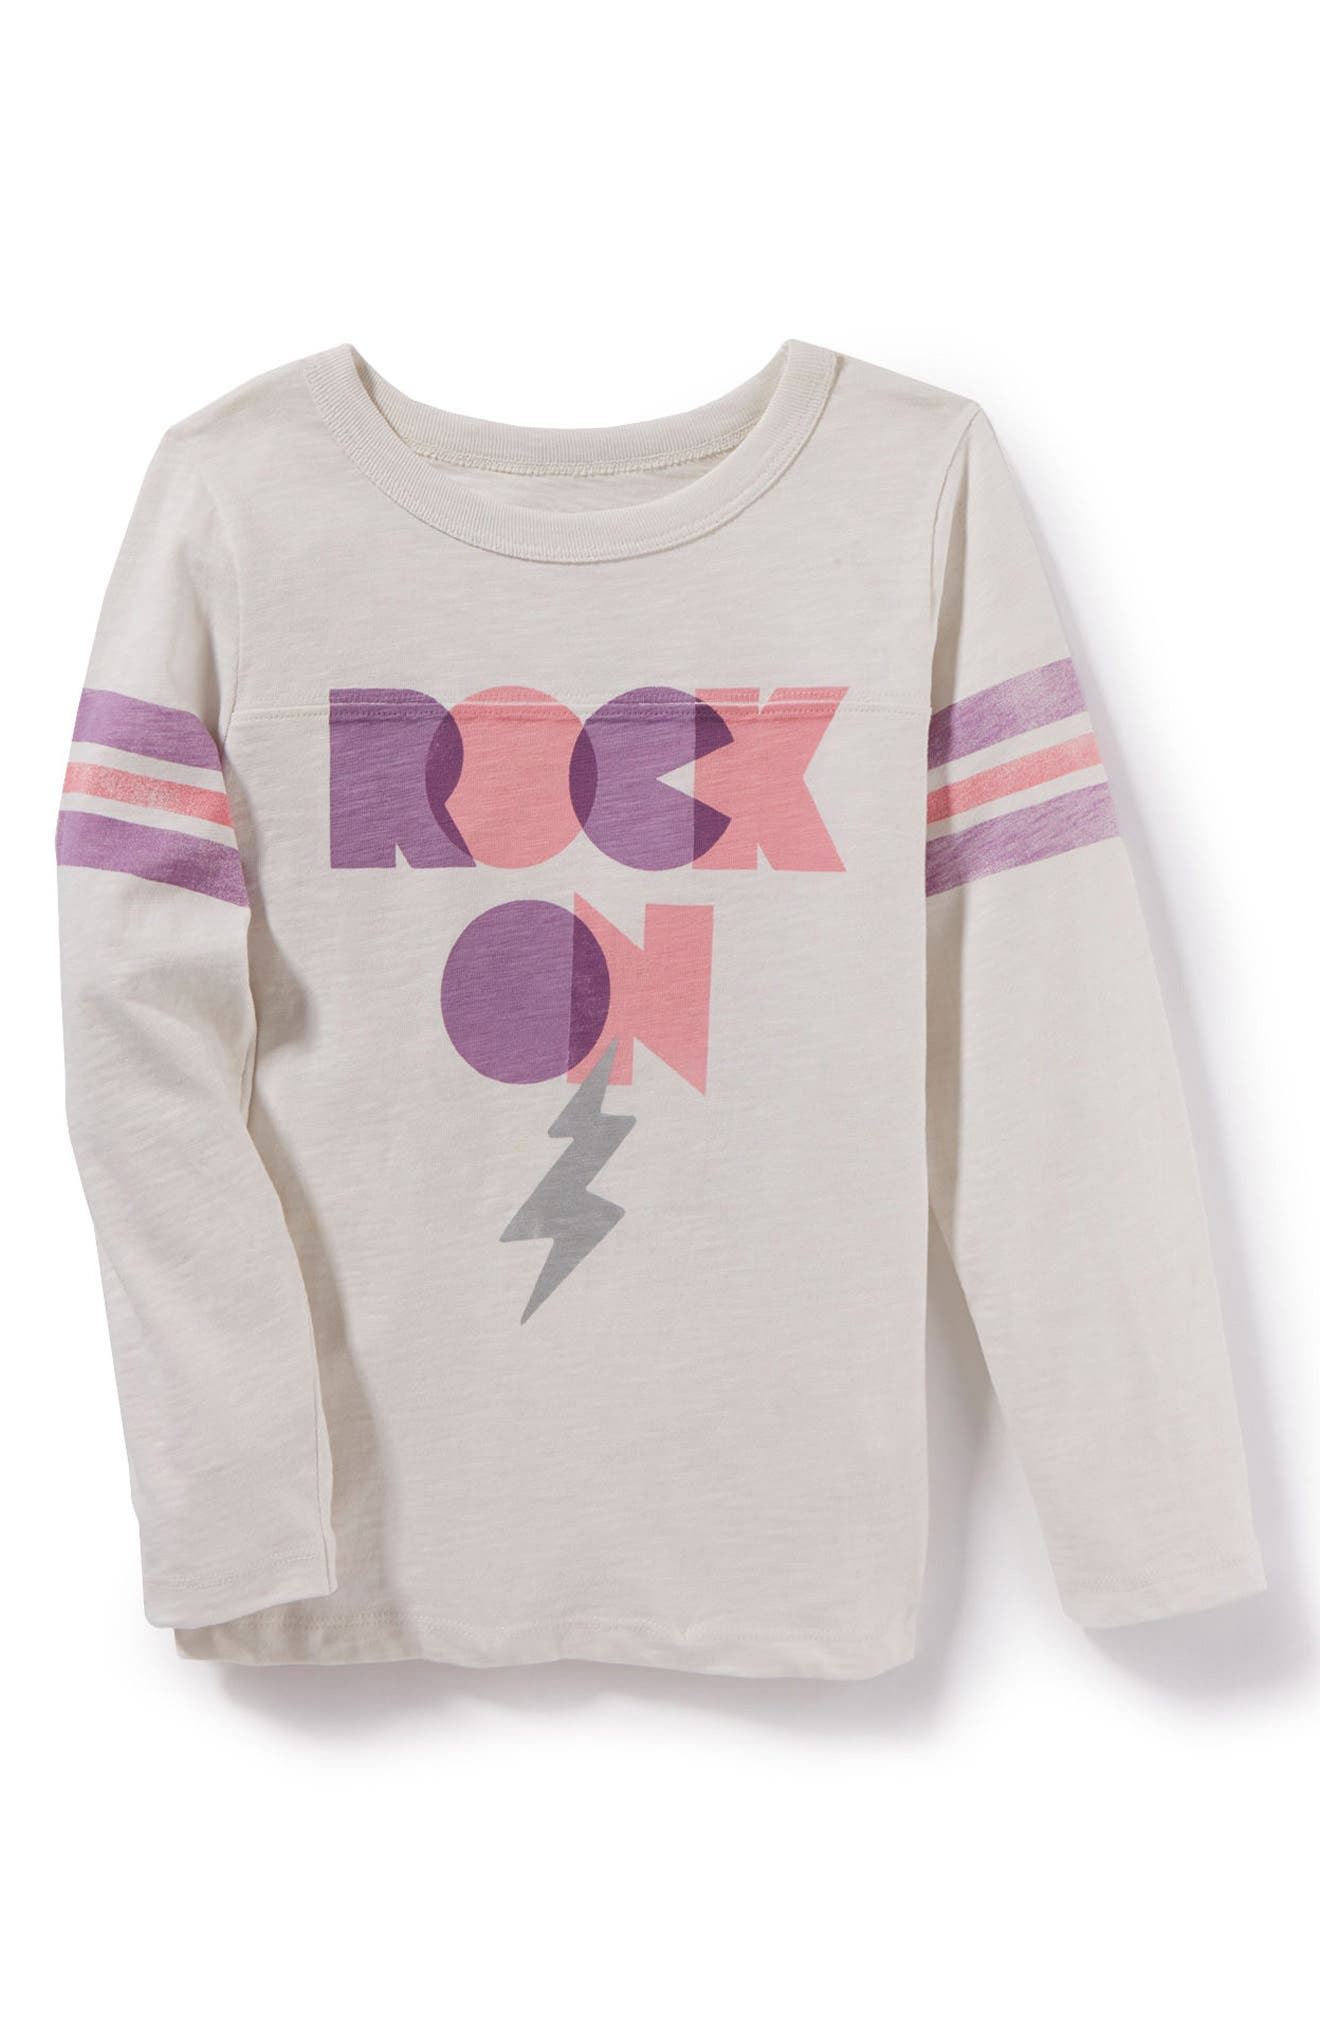 Rock On Graphic Tee,                             Main thumbnail 1, color,                             Ivory